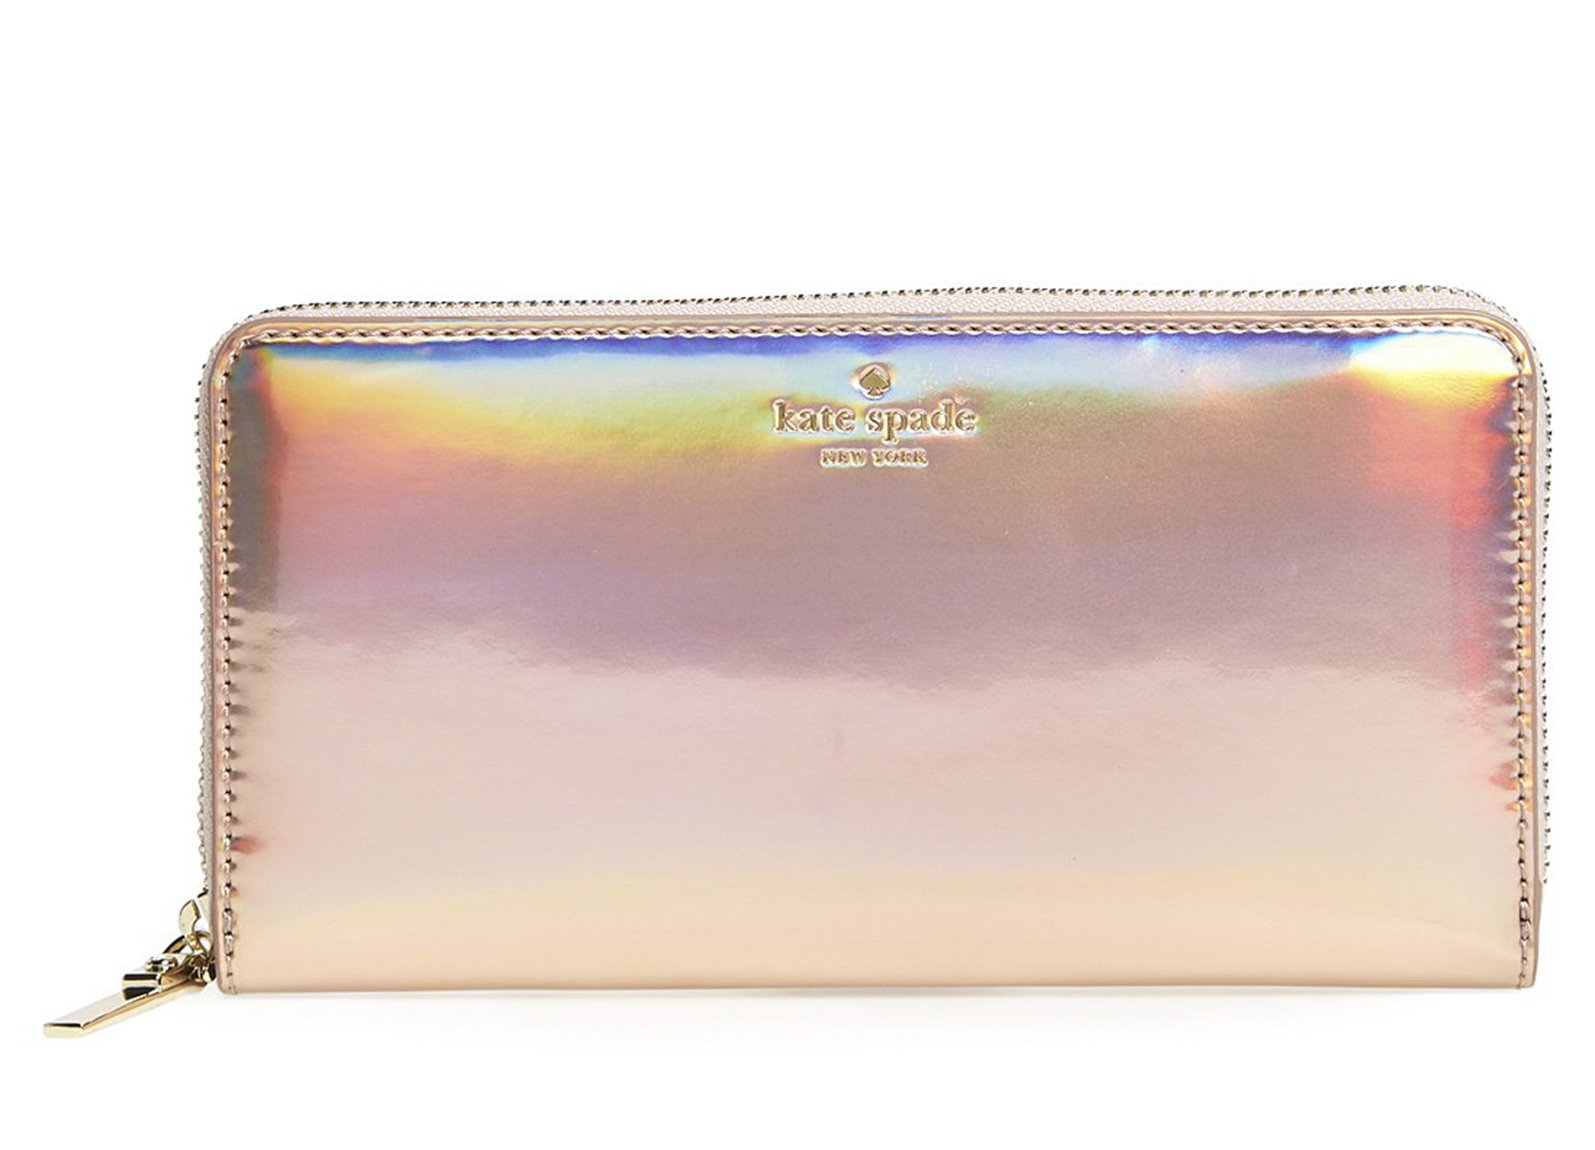 Kate Spade New York Lacey Wallet Rose Gold